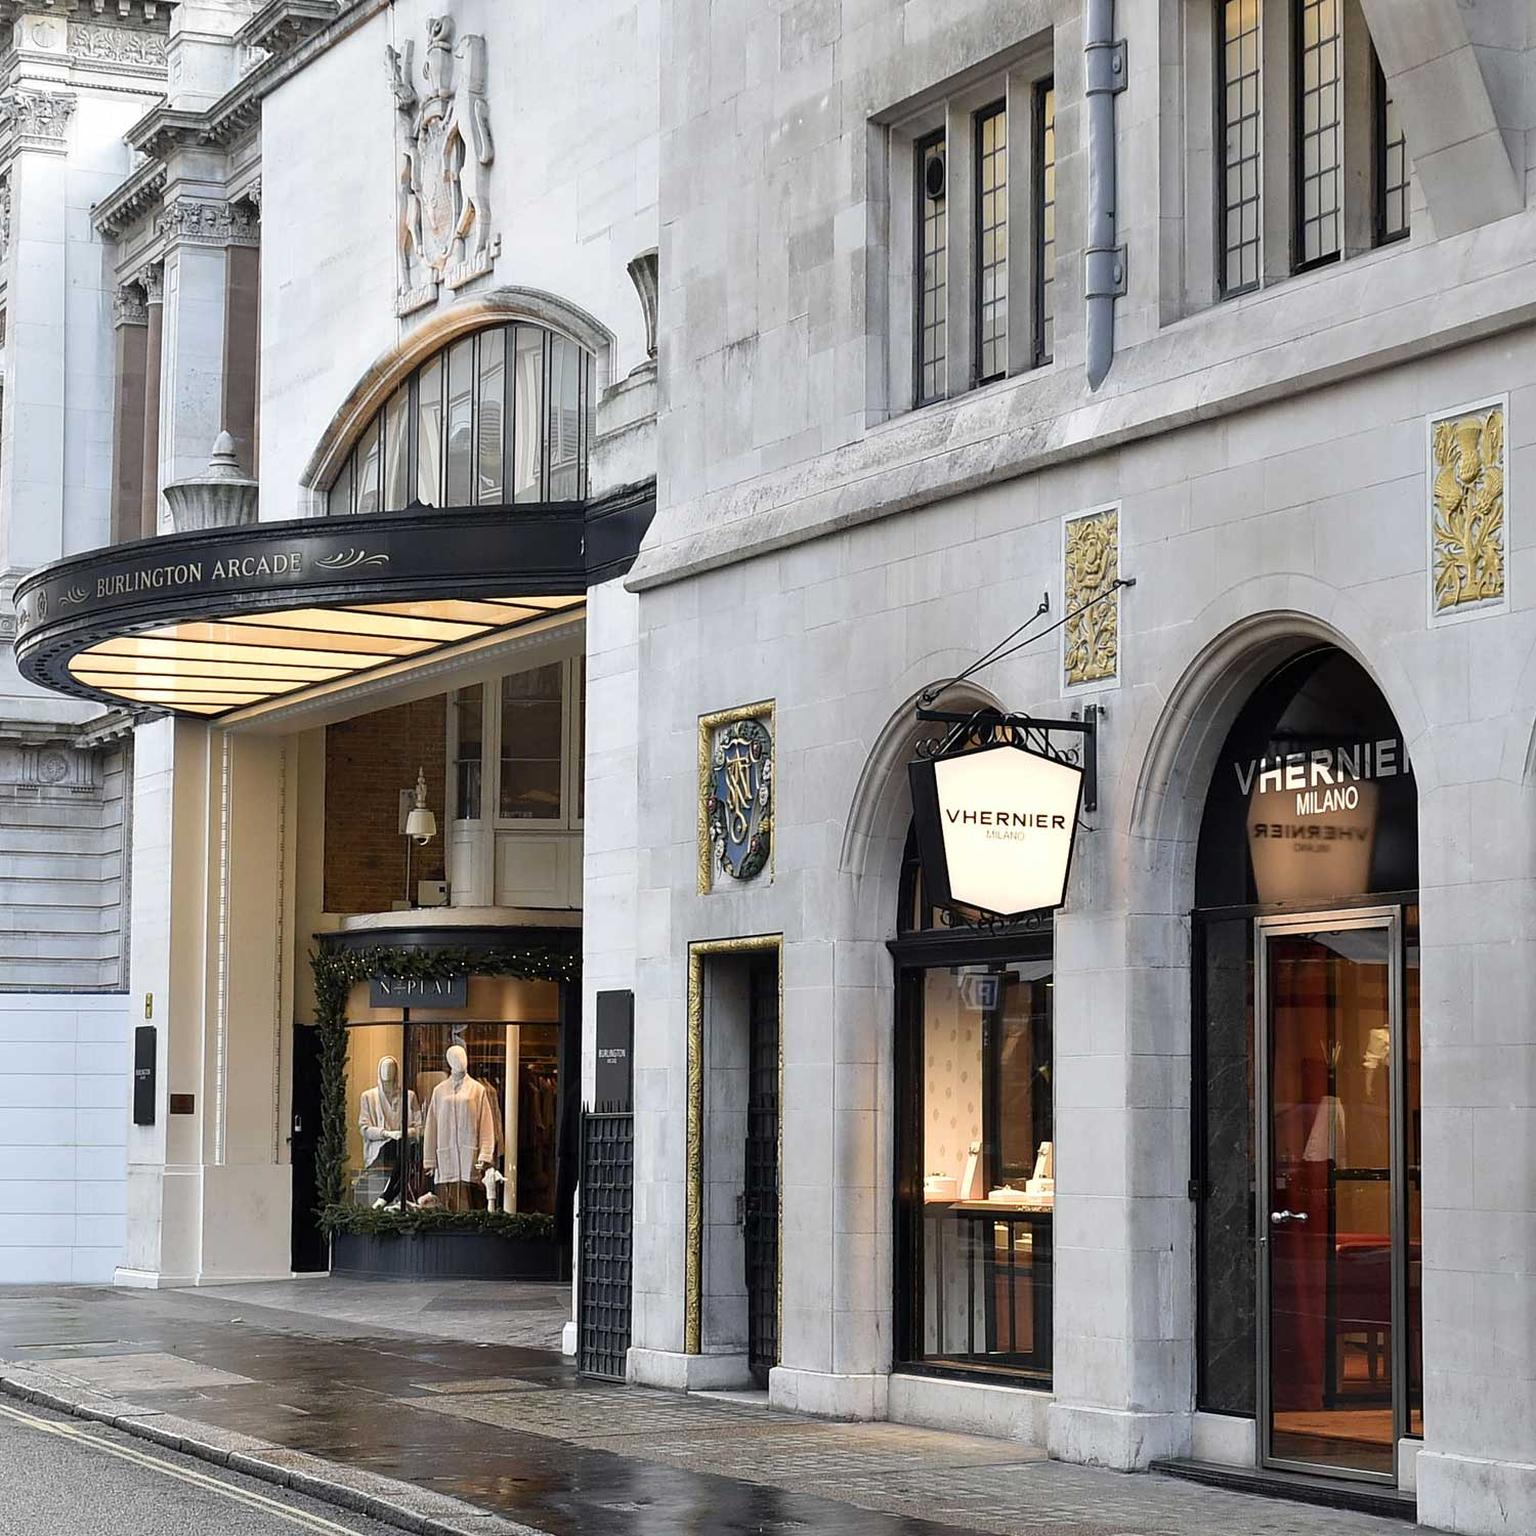 Vhernier boutique London exterior